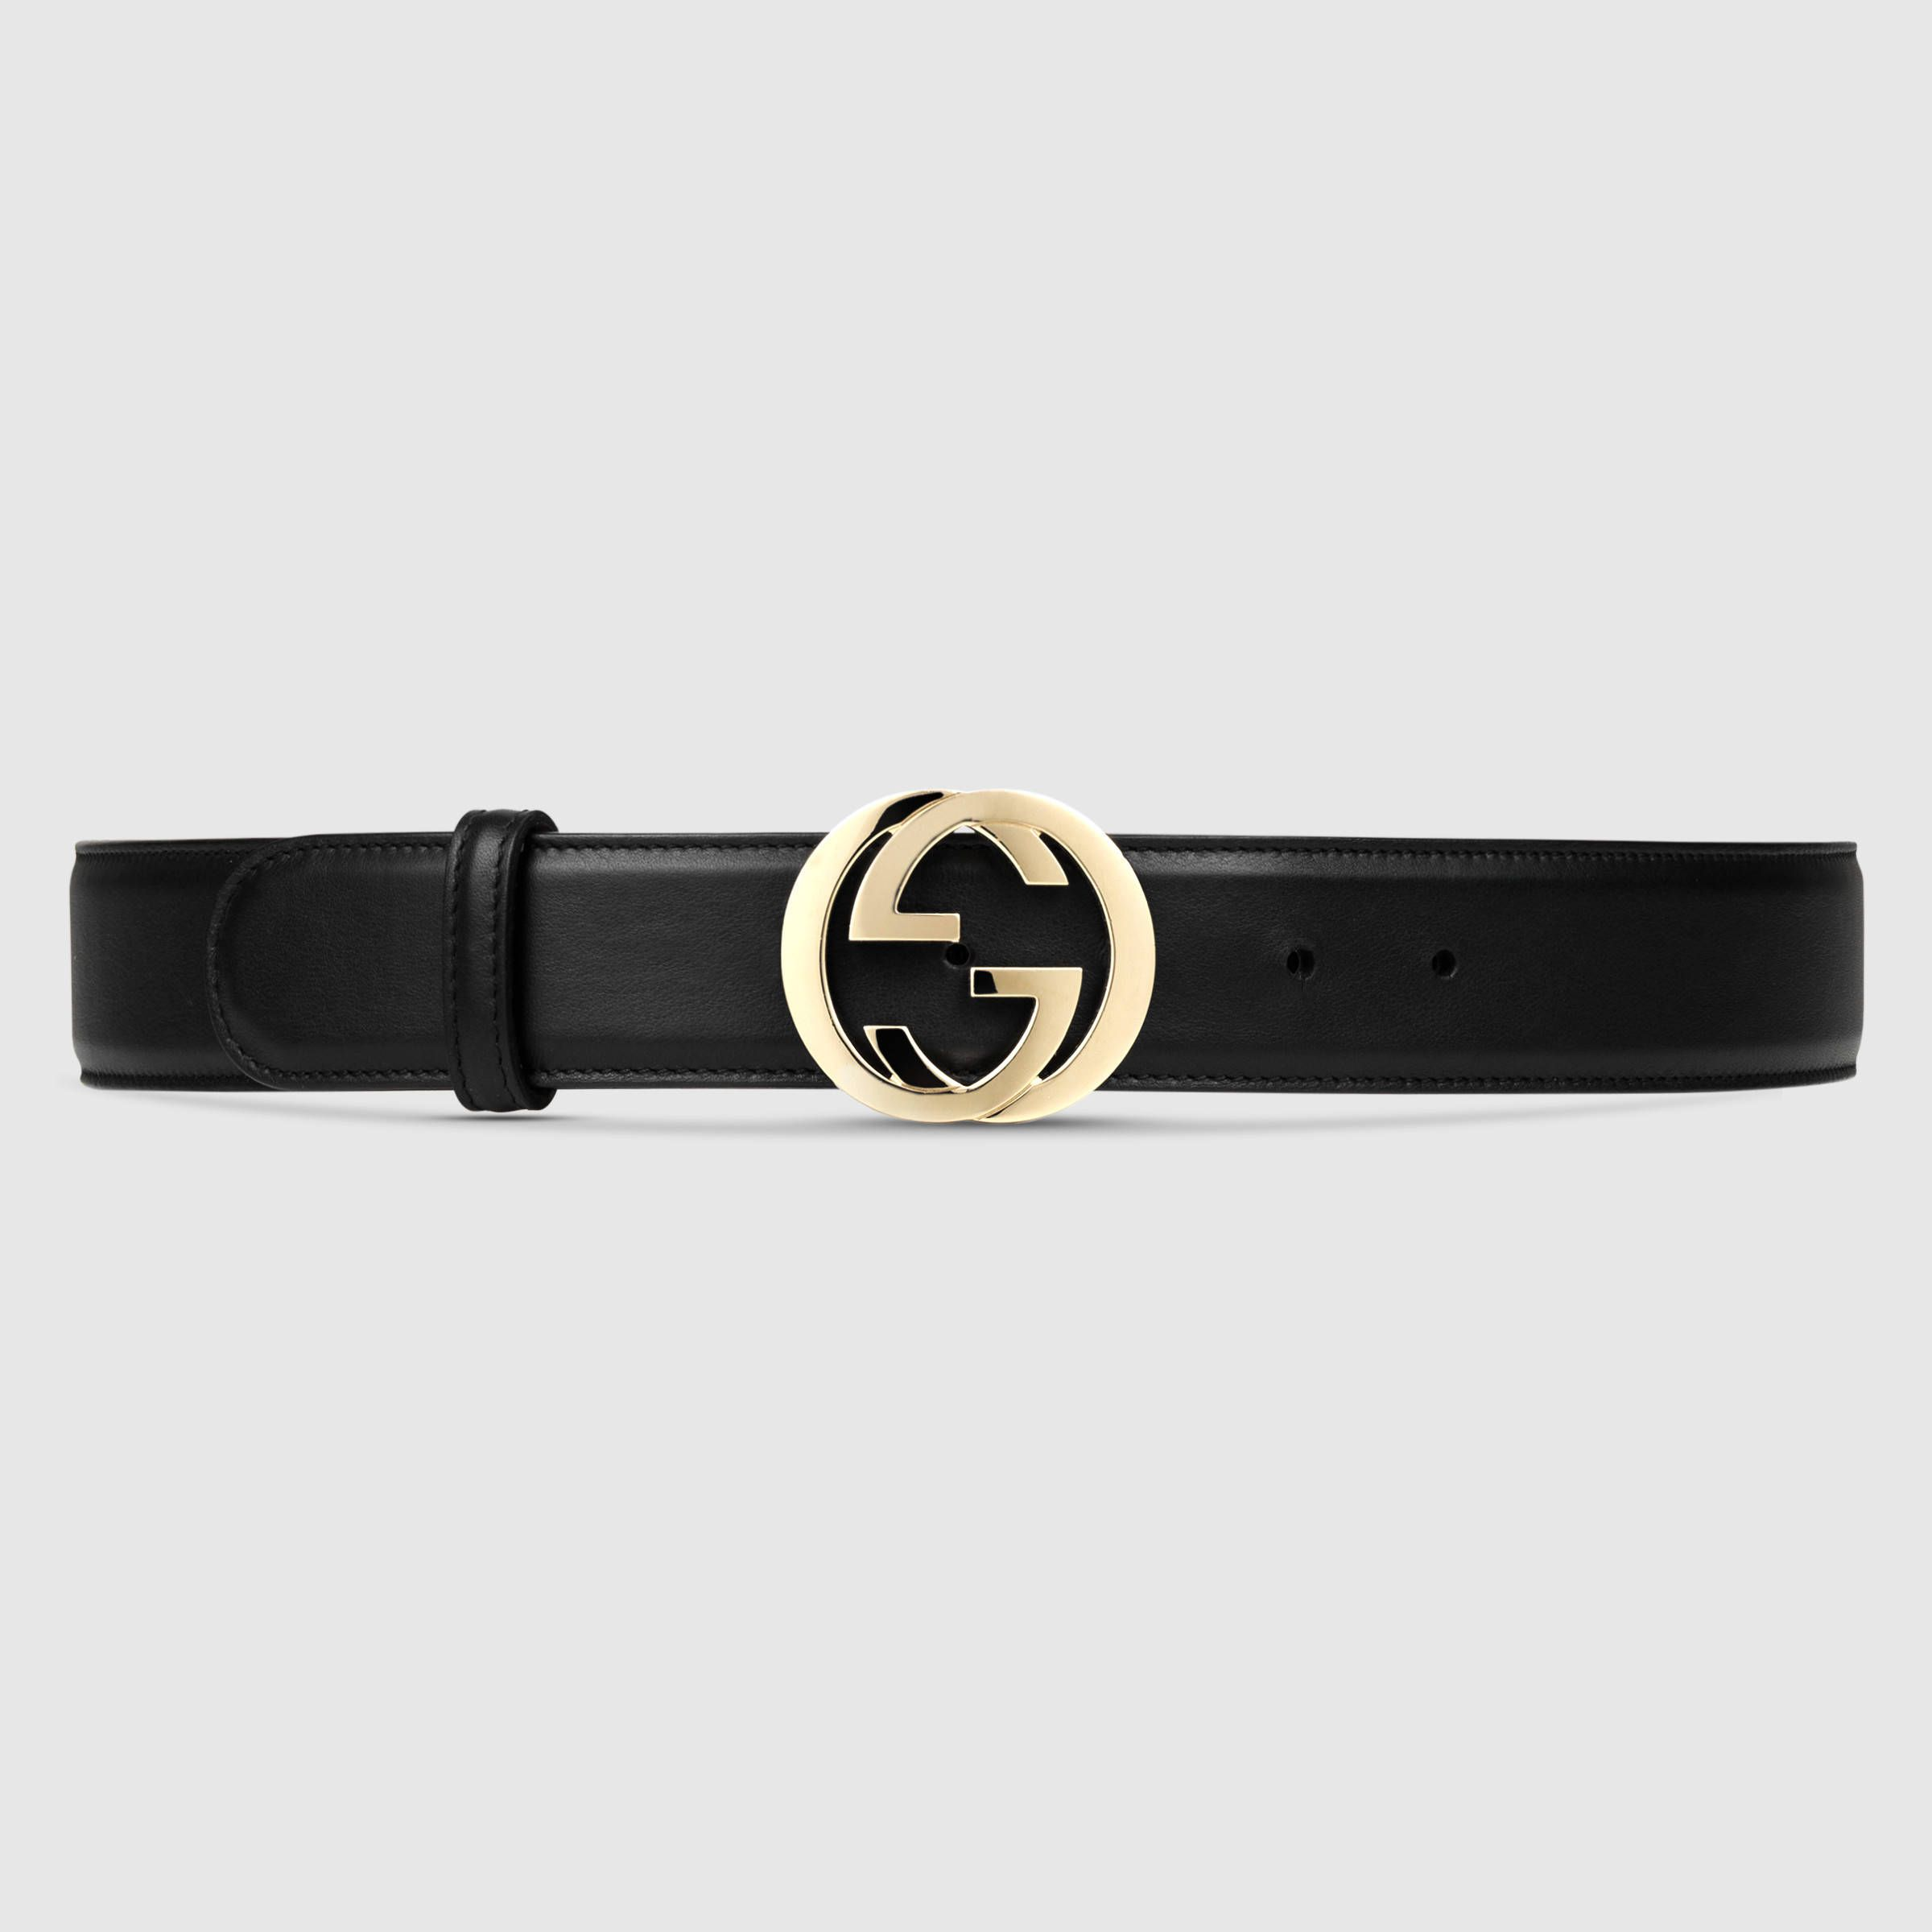 ad769822a74 Gucci Women - Leather belt with interlocking G - 370543AP00G1000